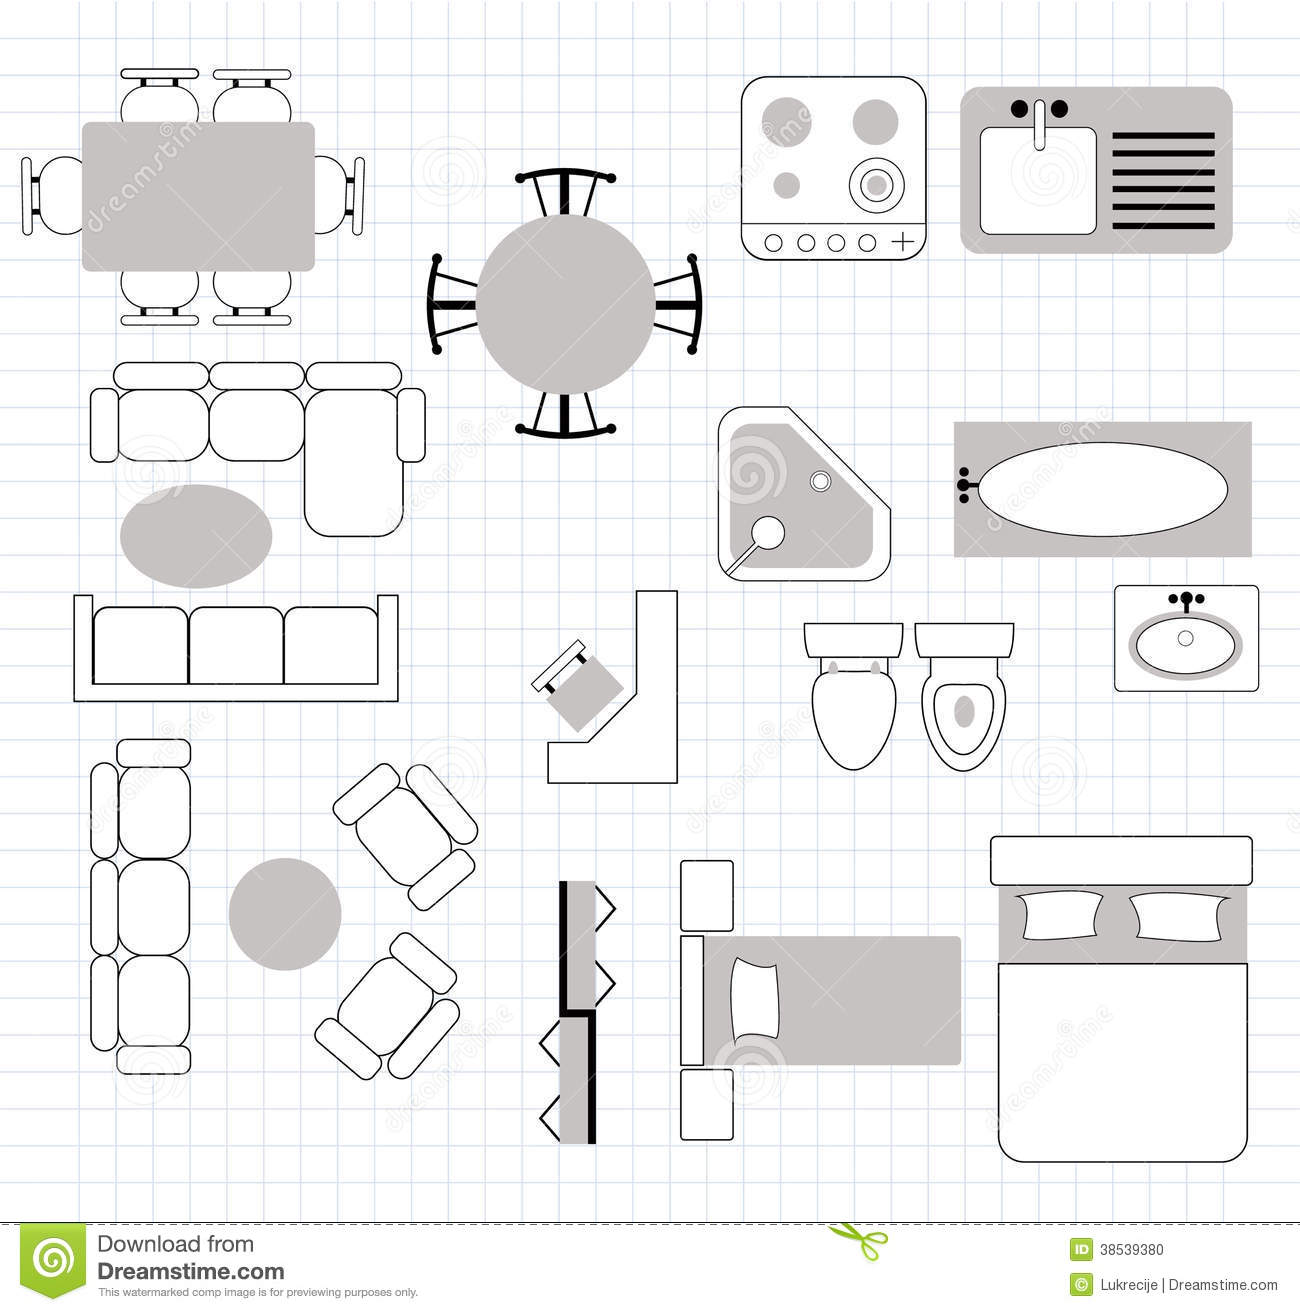 Clipart furniture floor plan clipground for Design a floor plan online for free